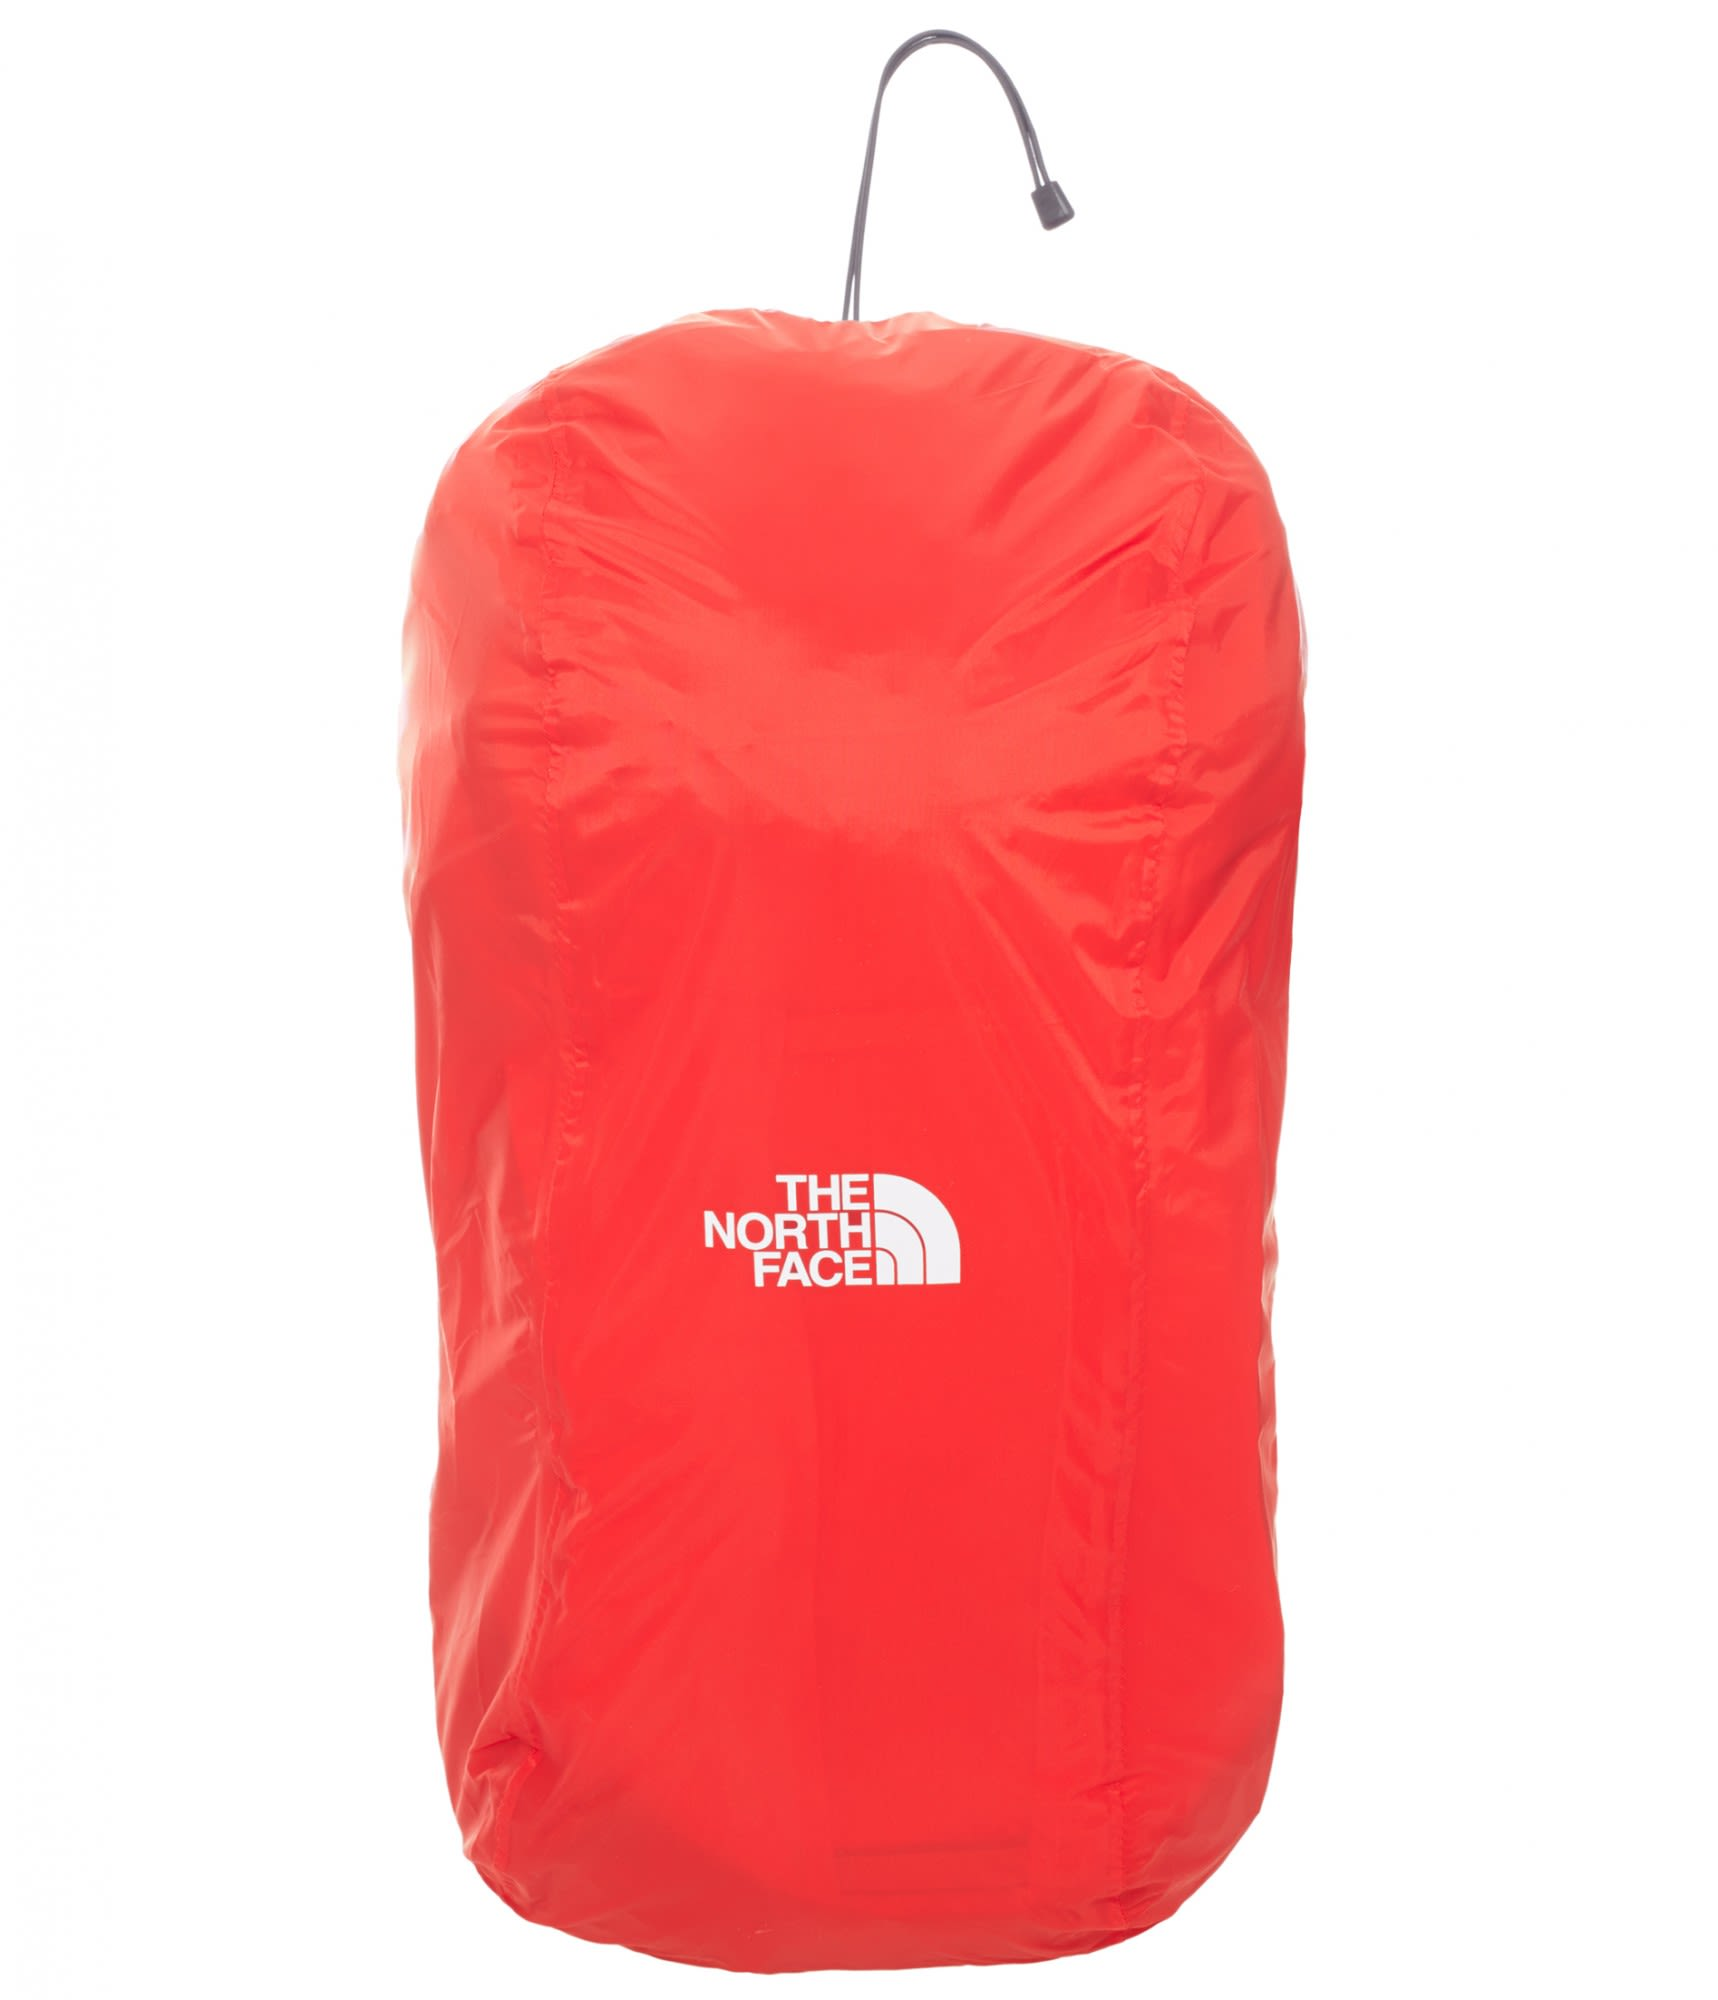 The North Face Pack Rain Cover XL Rot, 75-85l -Farbe TNF Red, 75-85l